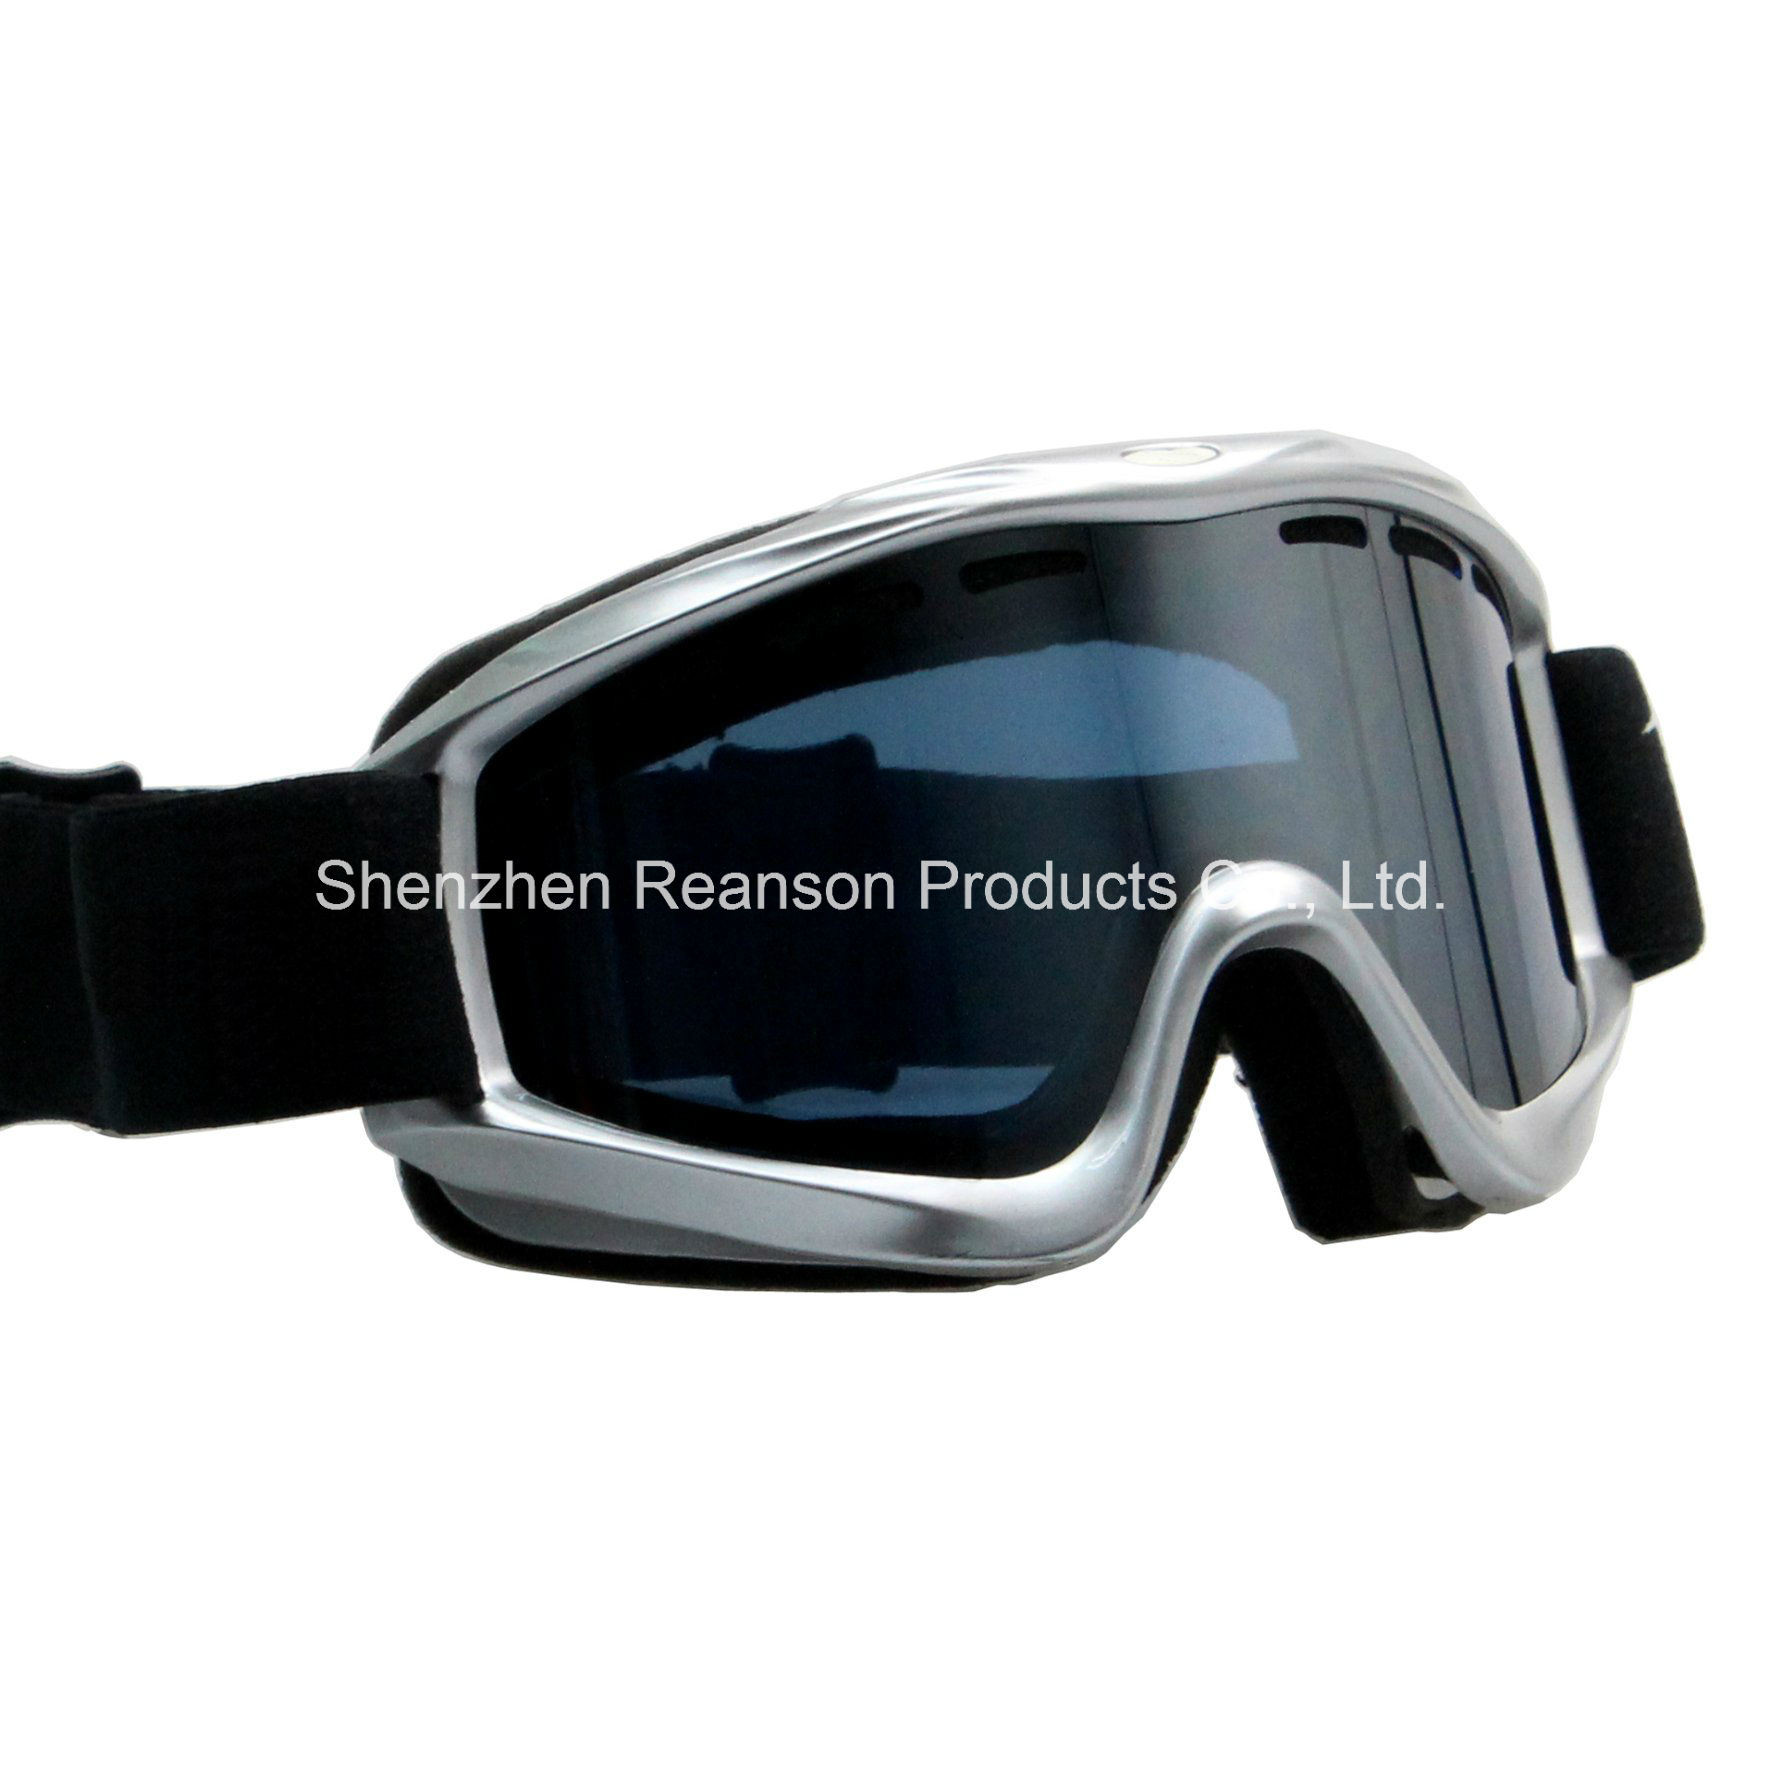 Reanson Double Lenses Helmet Compatible Anti-Fog Skiing Goggles